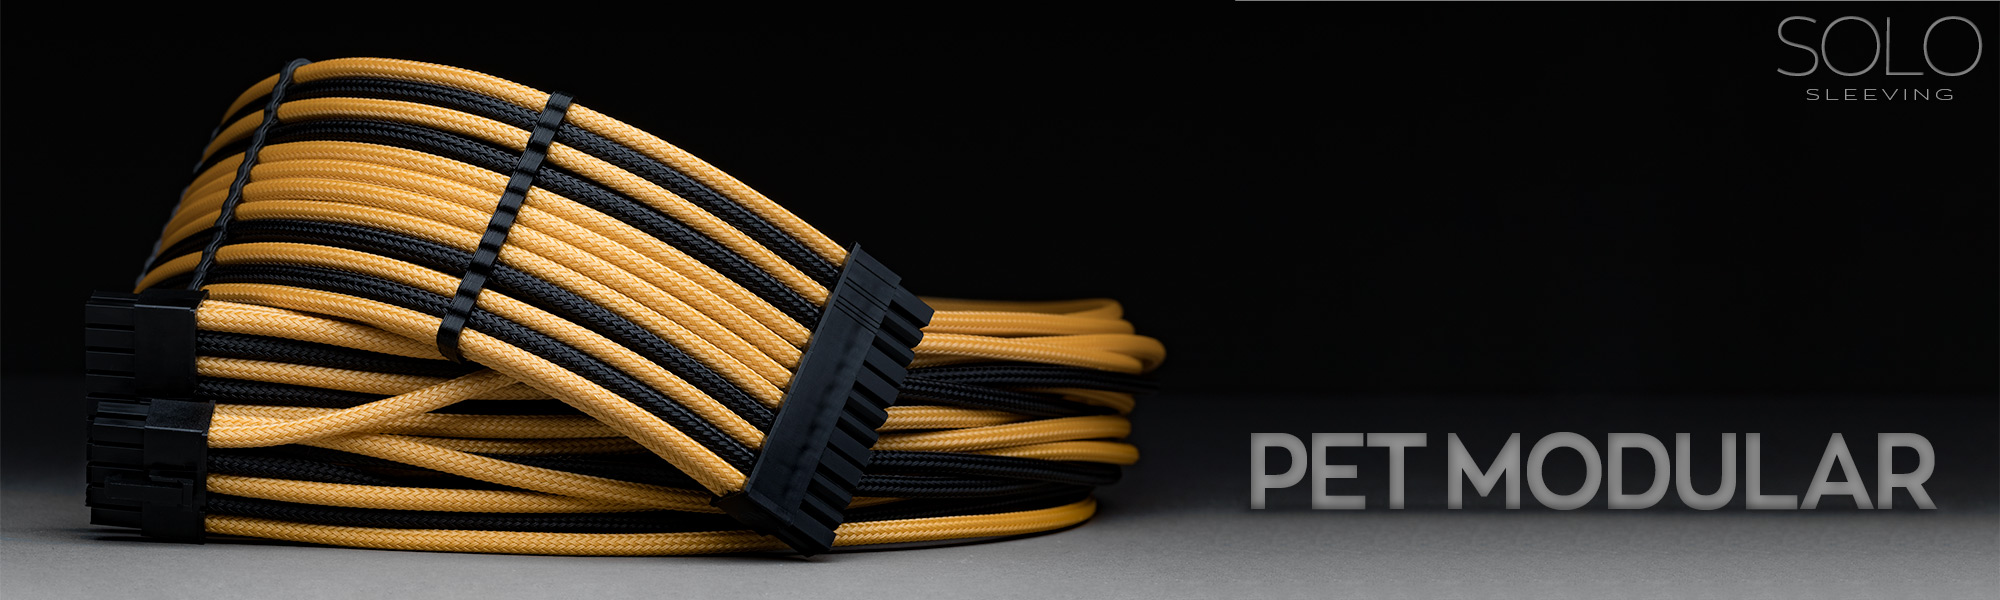 Custom sleeved power supply cables. Design your own PSU cables in any color pattern.